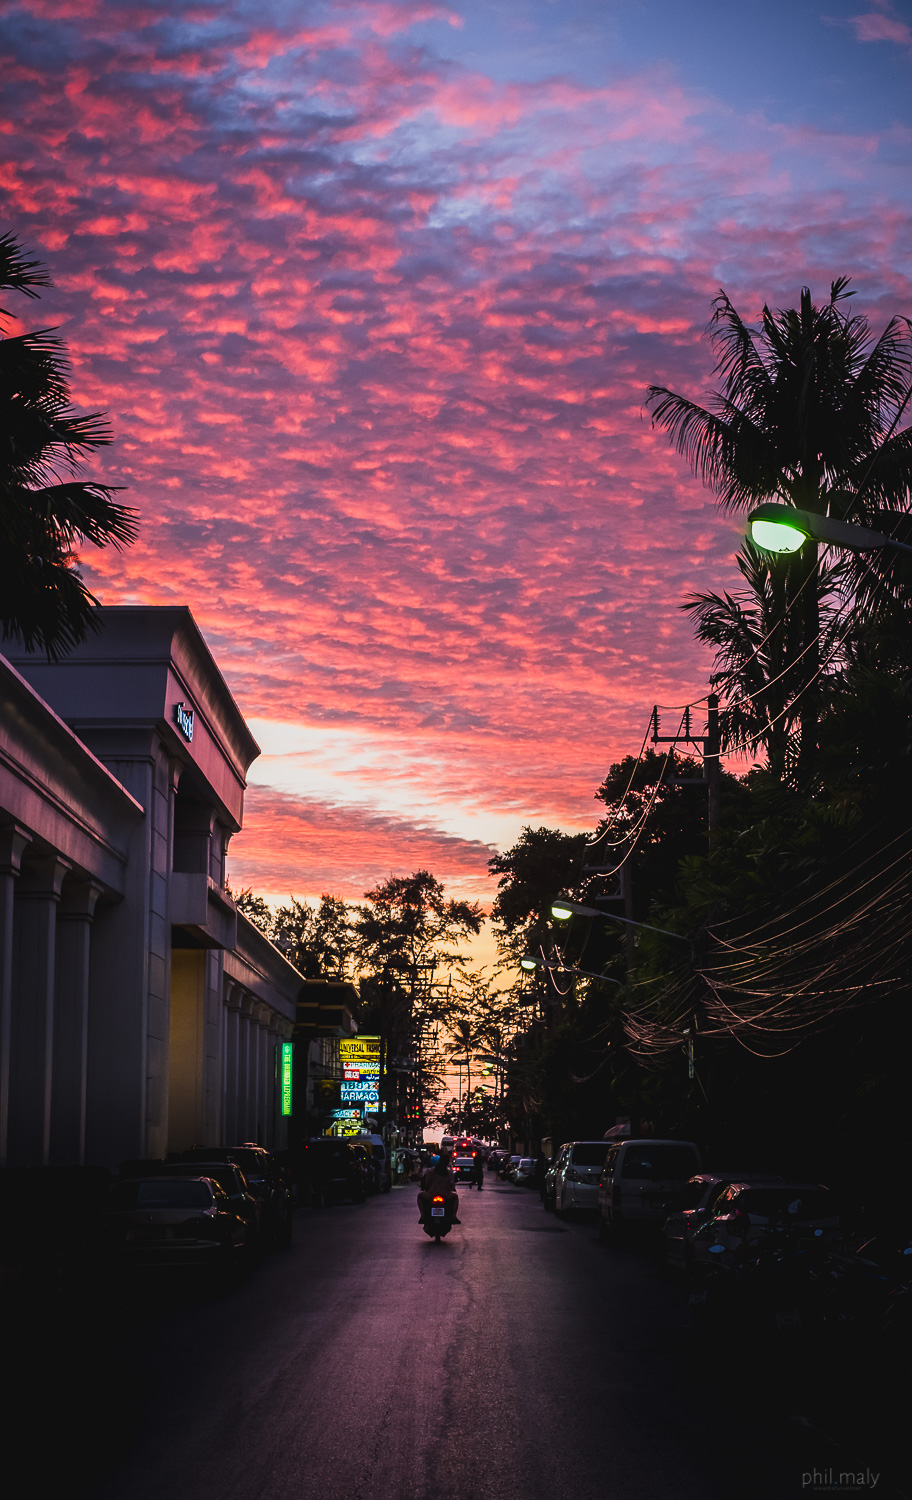 Cloudy sky on fire at sunset in Patong